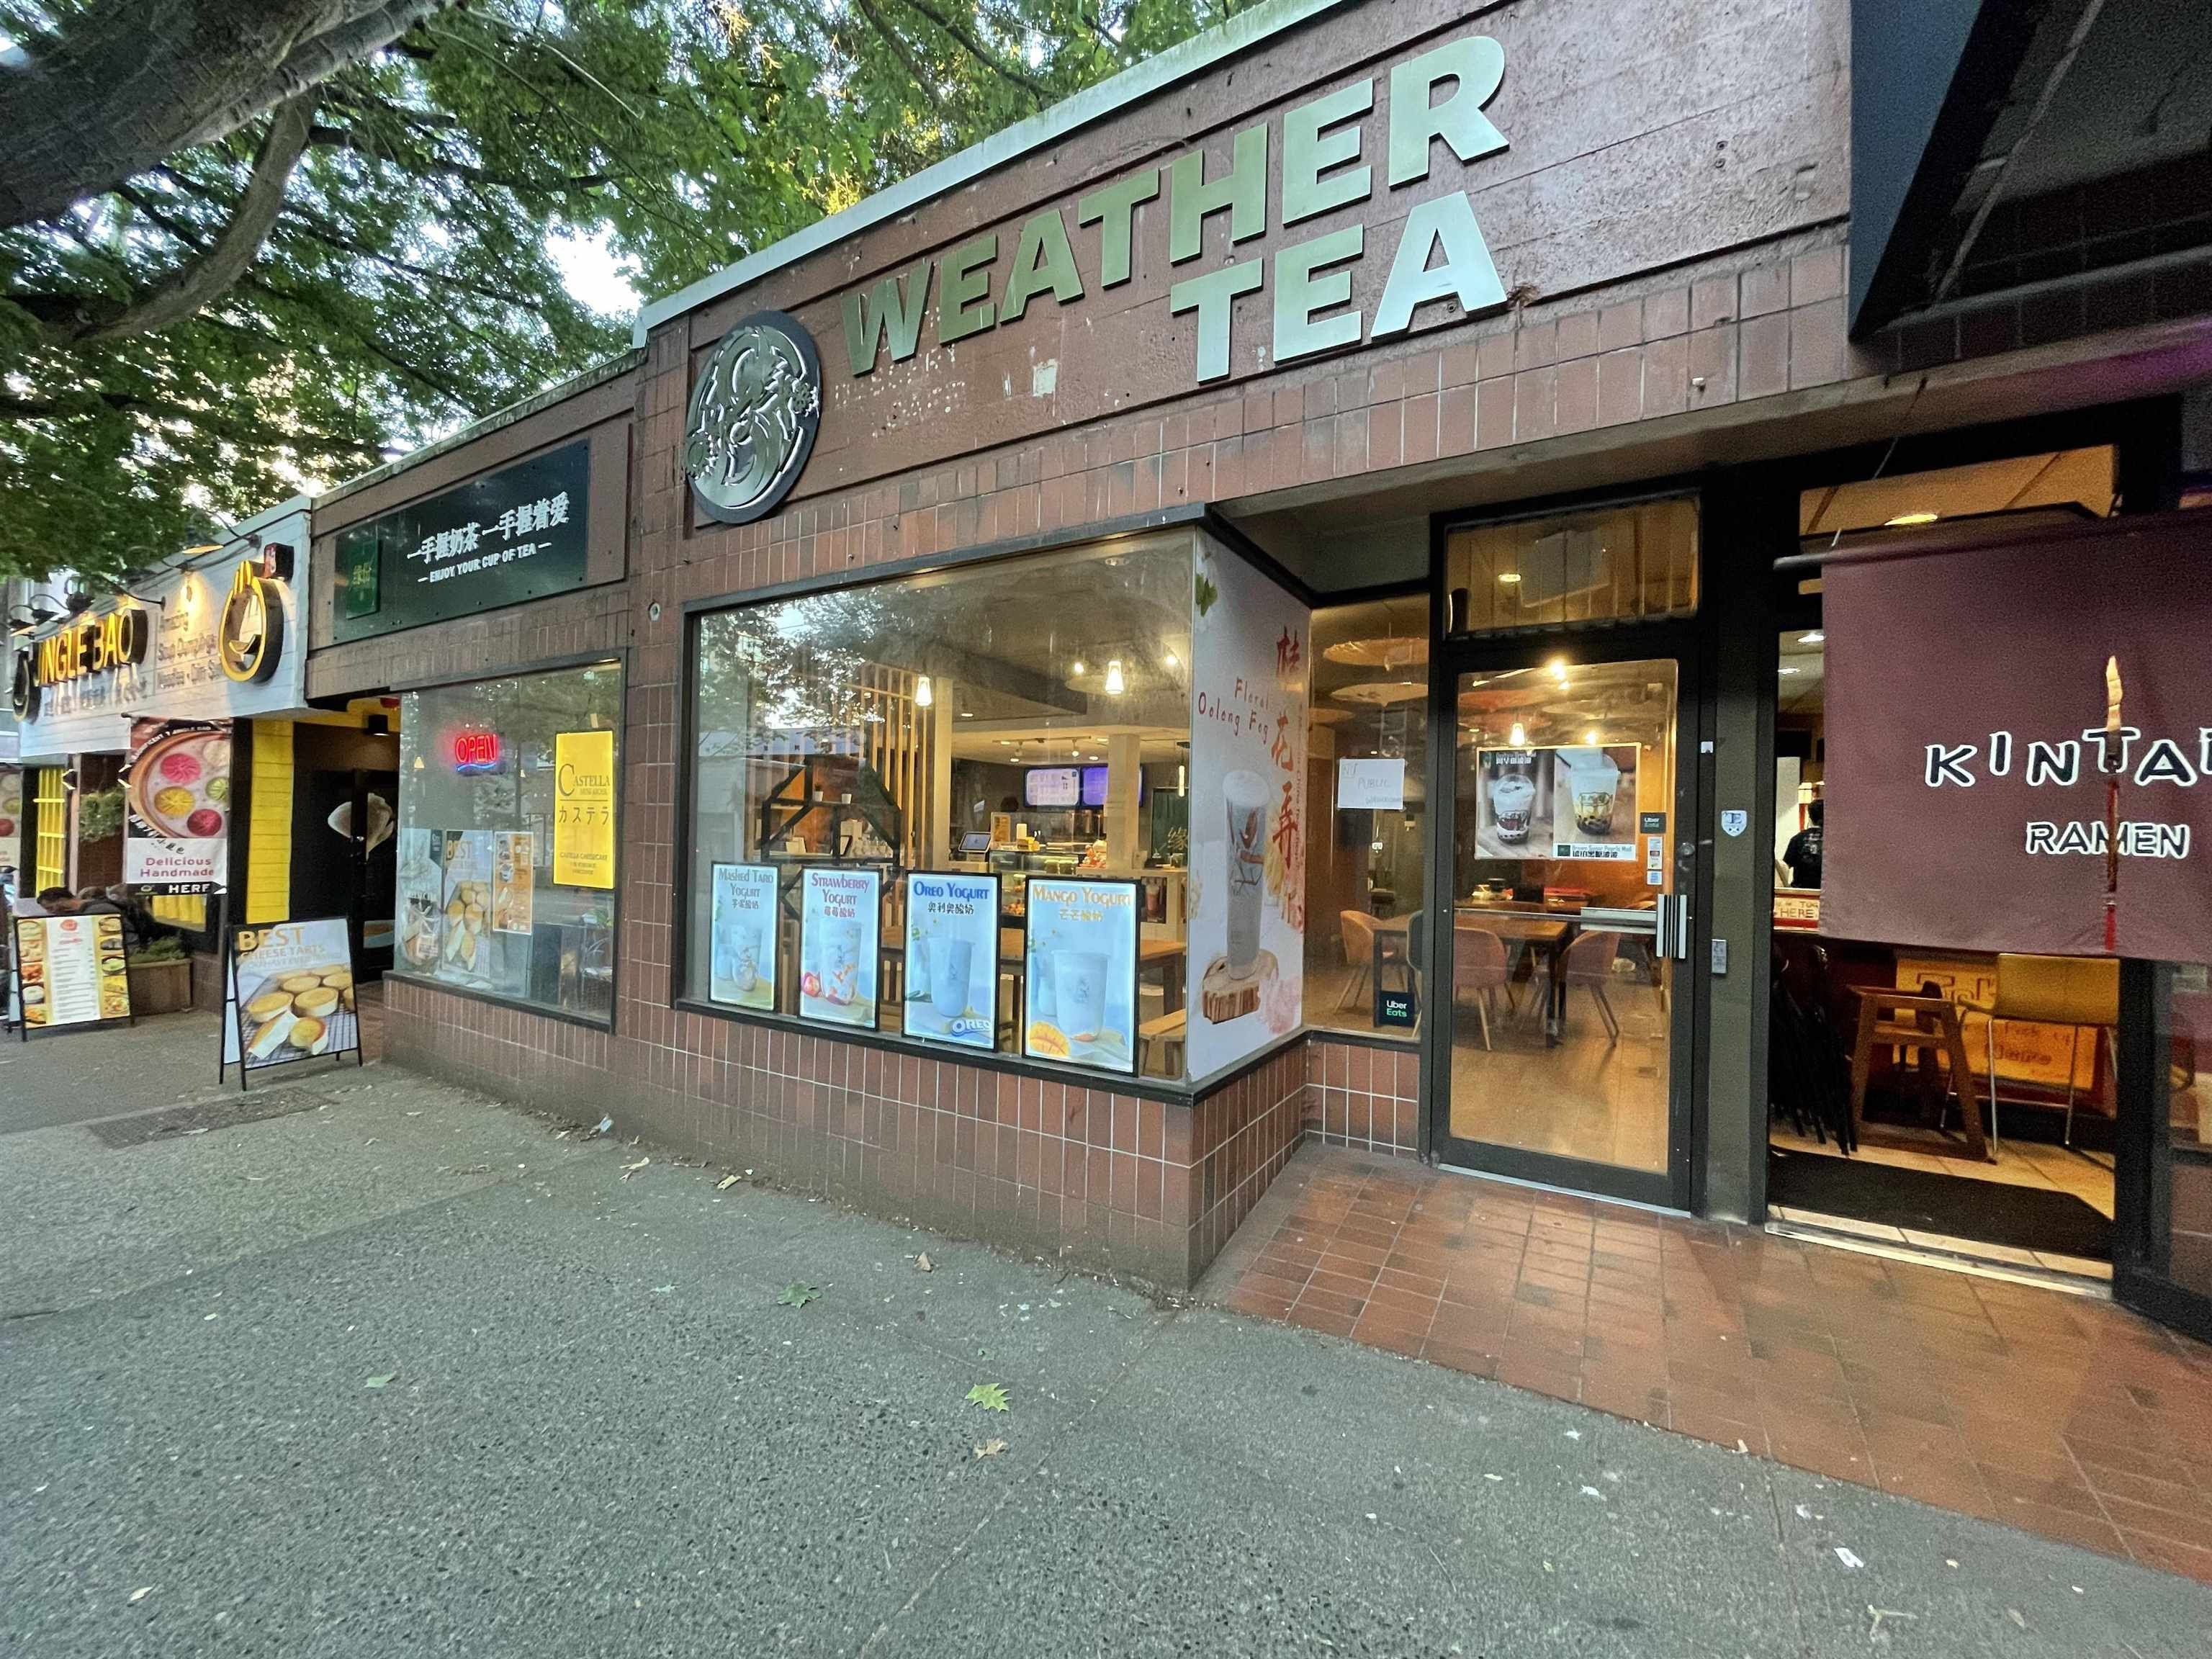 Main Photo: 780 DENMAN Street in Vancouver: Coal Harbour Business for sale (Vancouver West)  : MLS®# C8040098